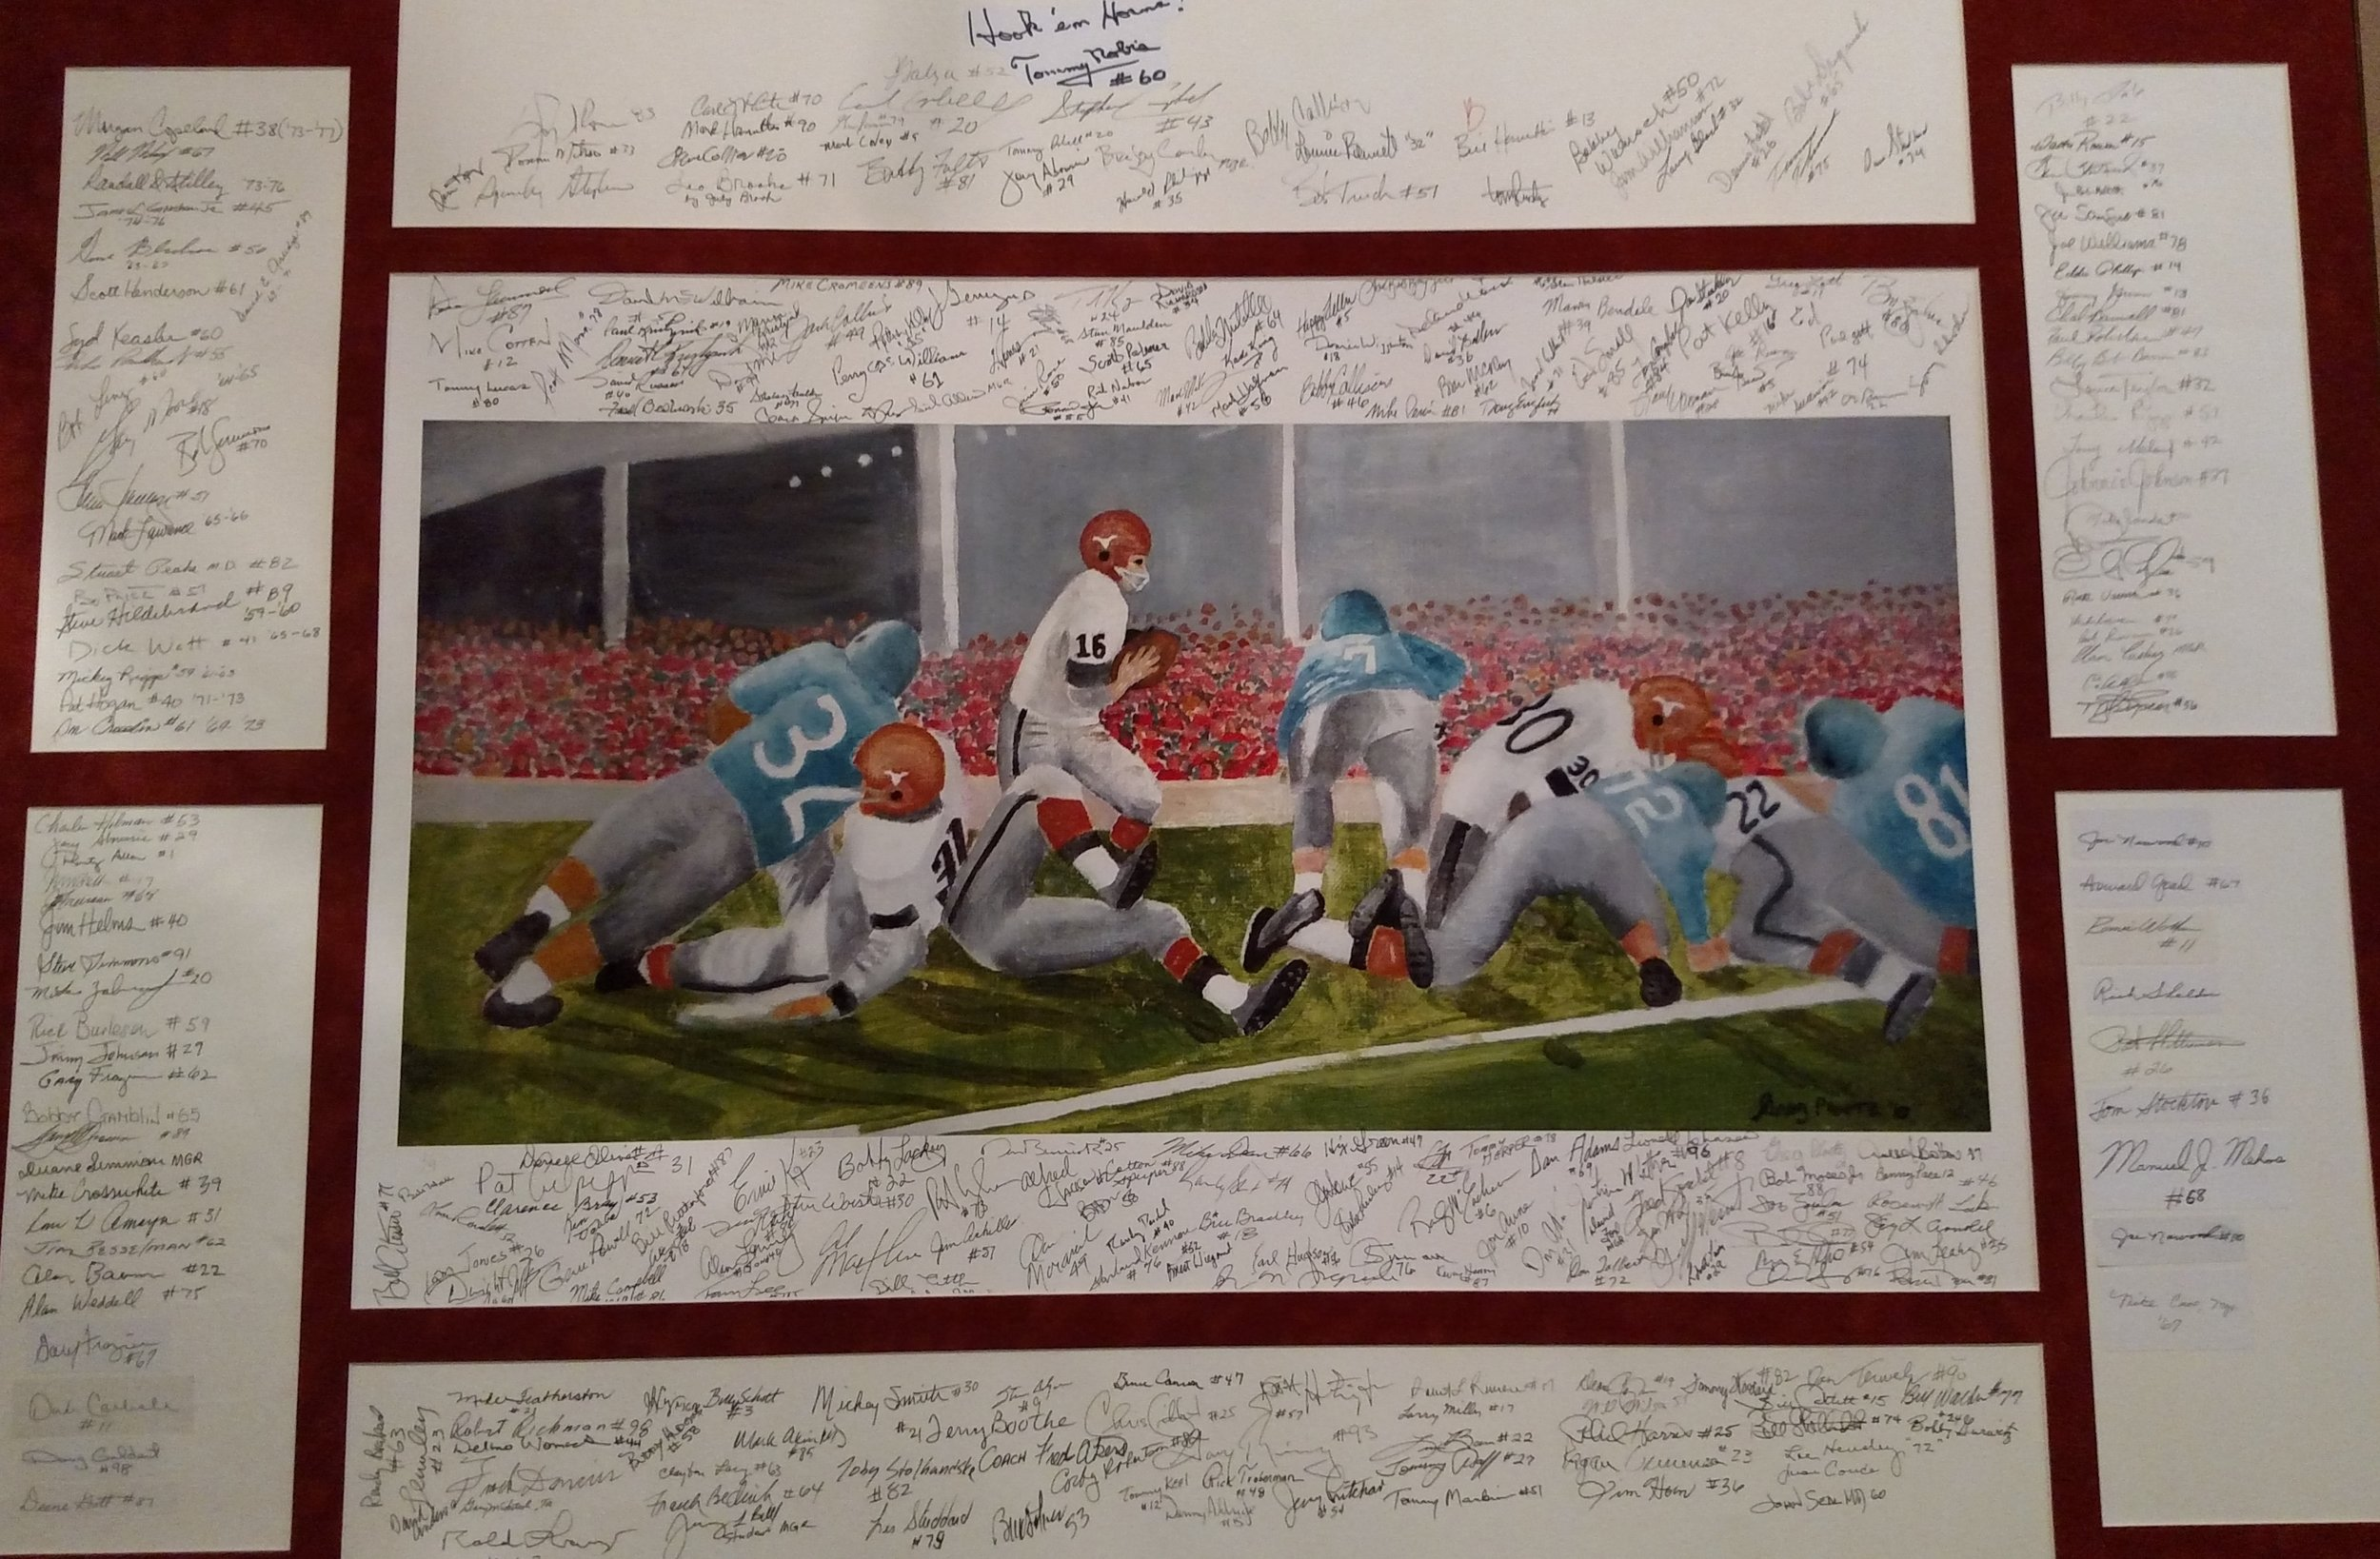 Ploetz painting signed by 285 DKR players will be auctioned this year.